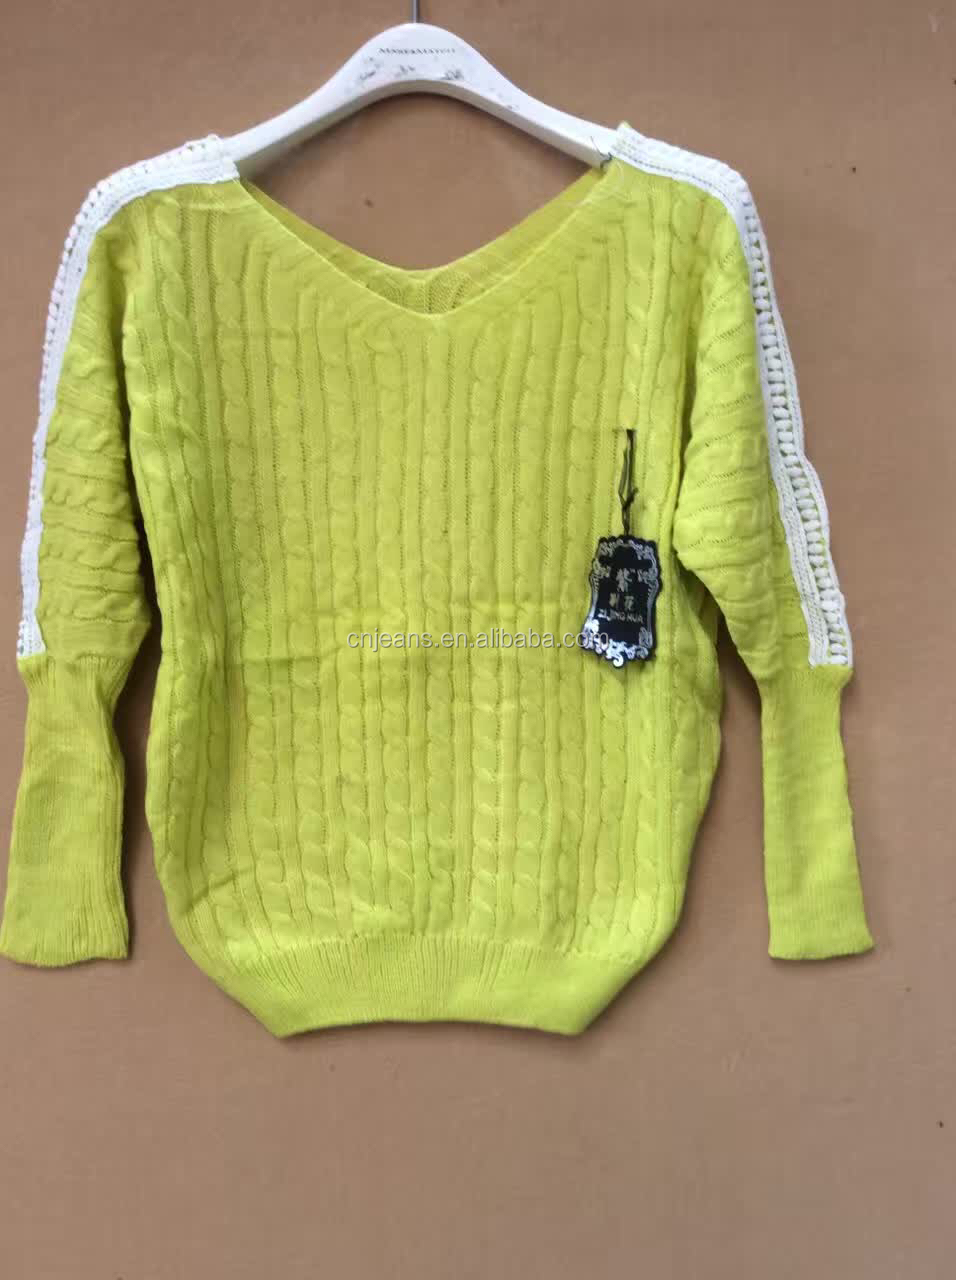 GZY sweaters women lady sweater sweater designs for women